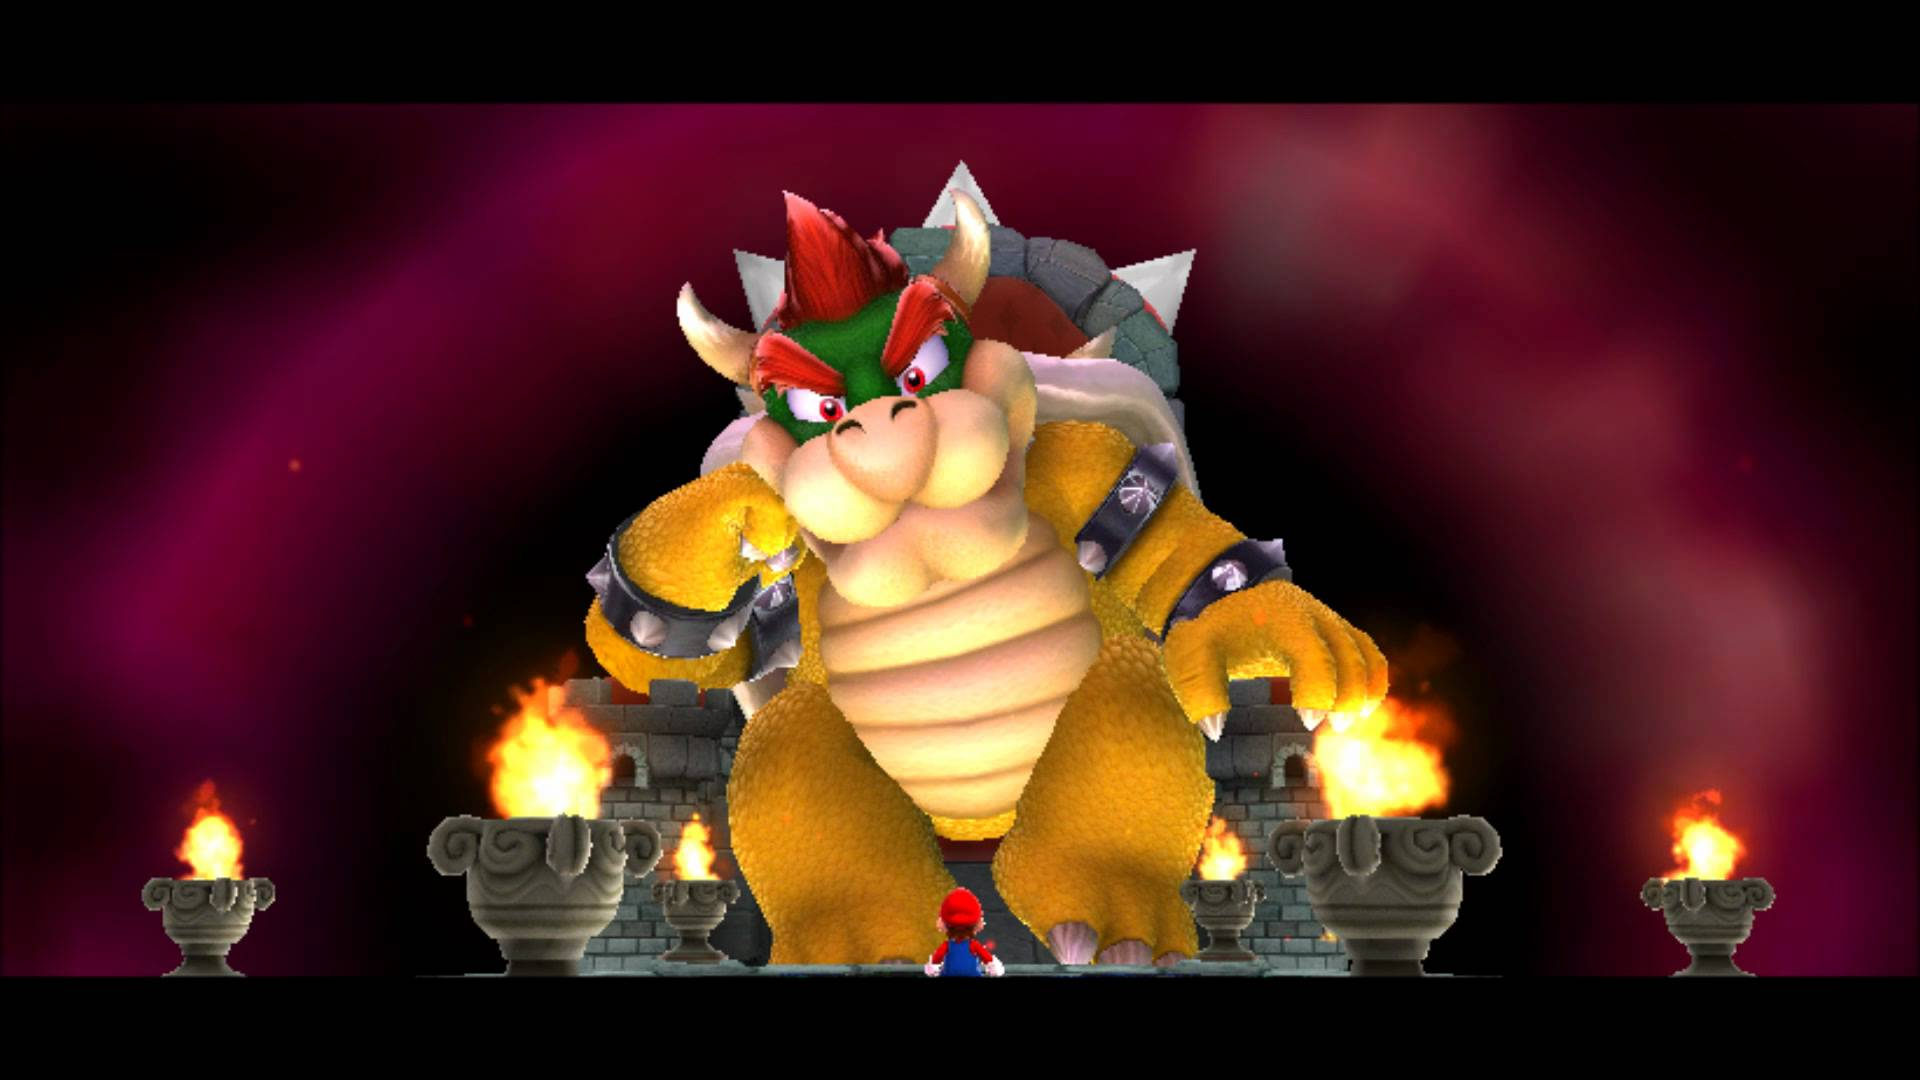 Taking Out The Trash: Fascist Koopas don't learn screenshot